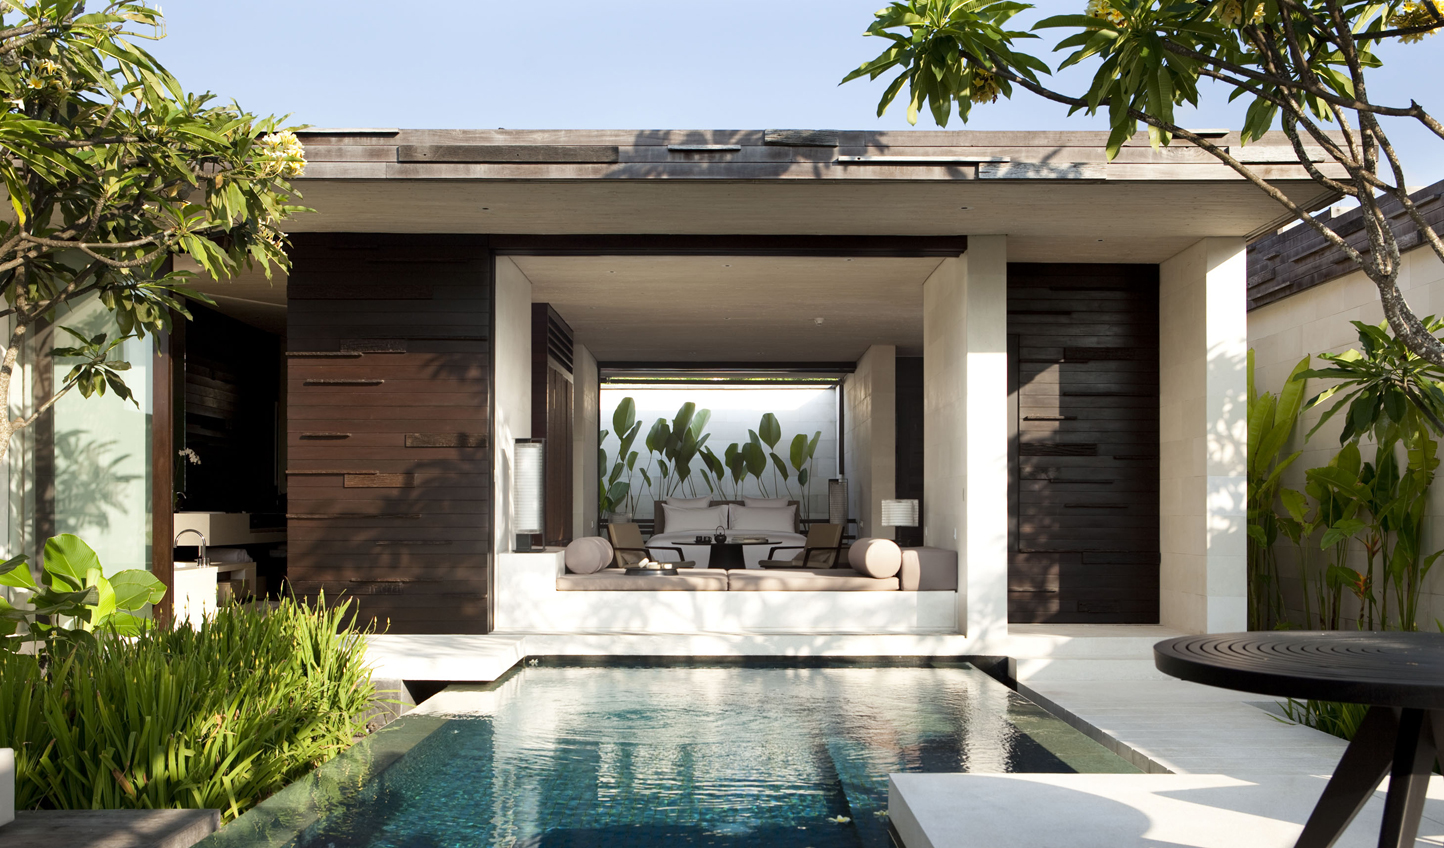 Retreat to gorgeous villas with private pools